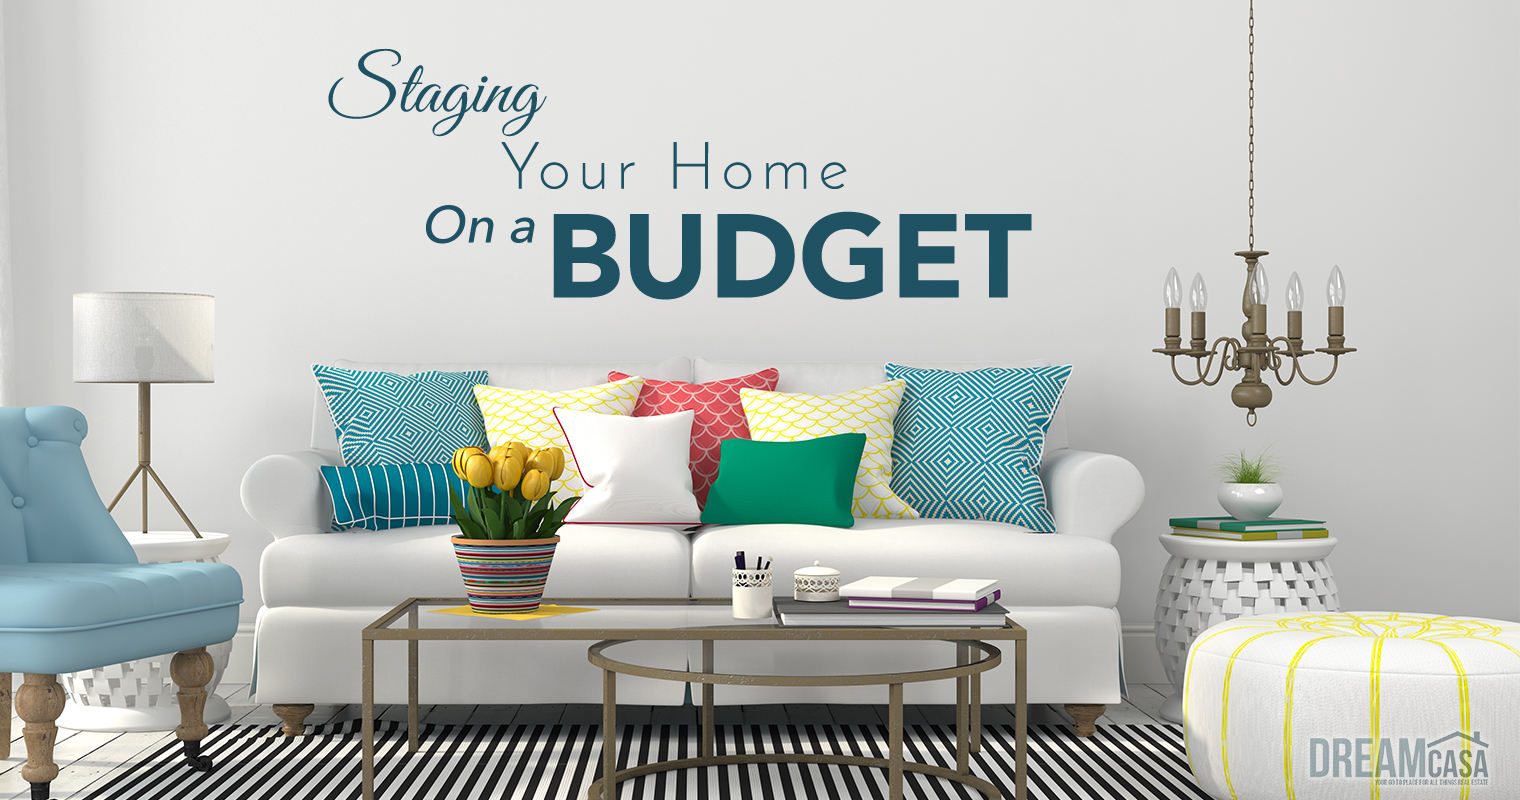 5 Easy Ways to Stage Your Home on a Budget